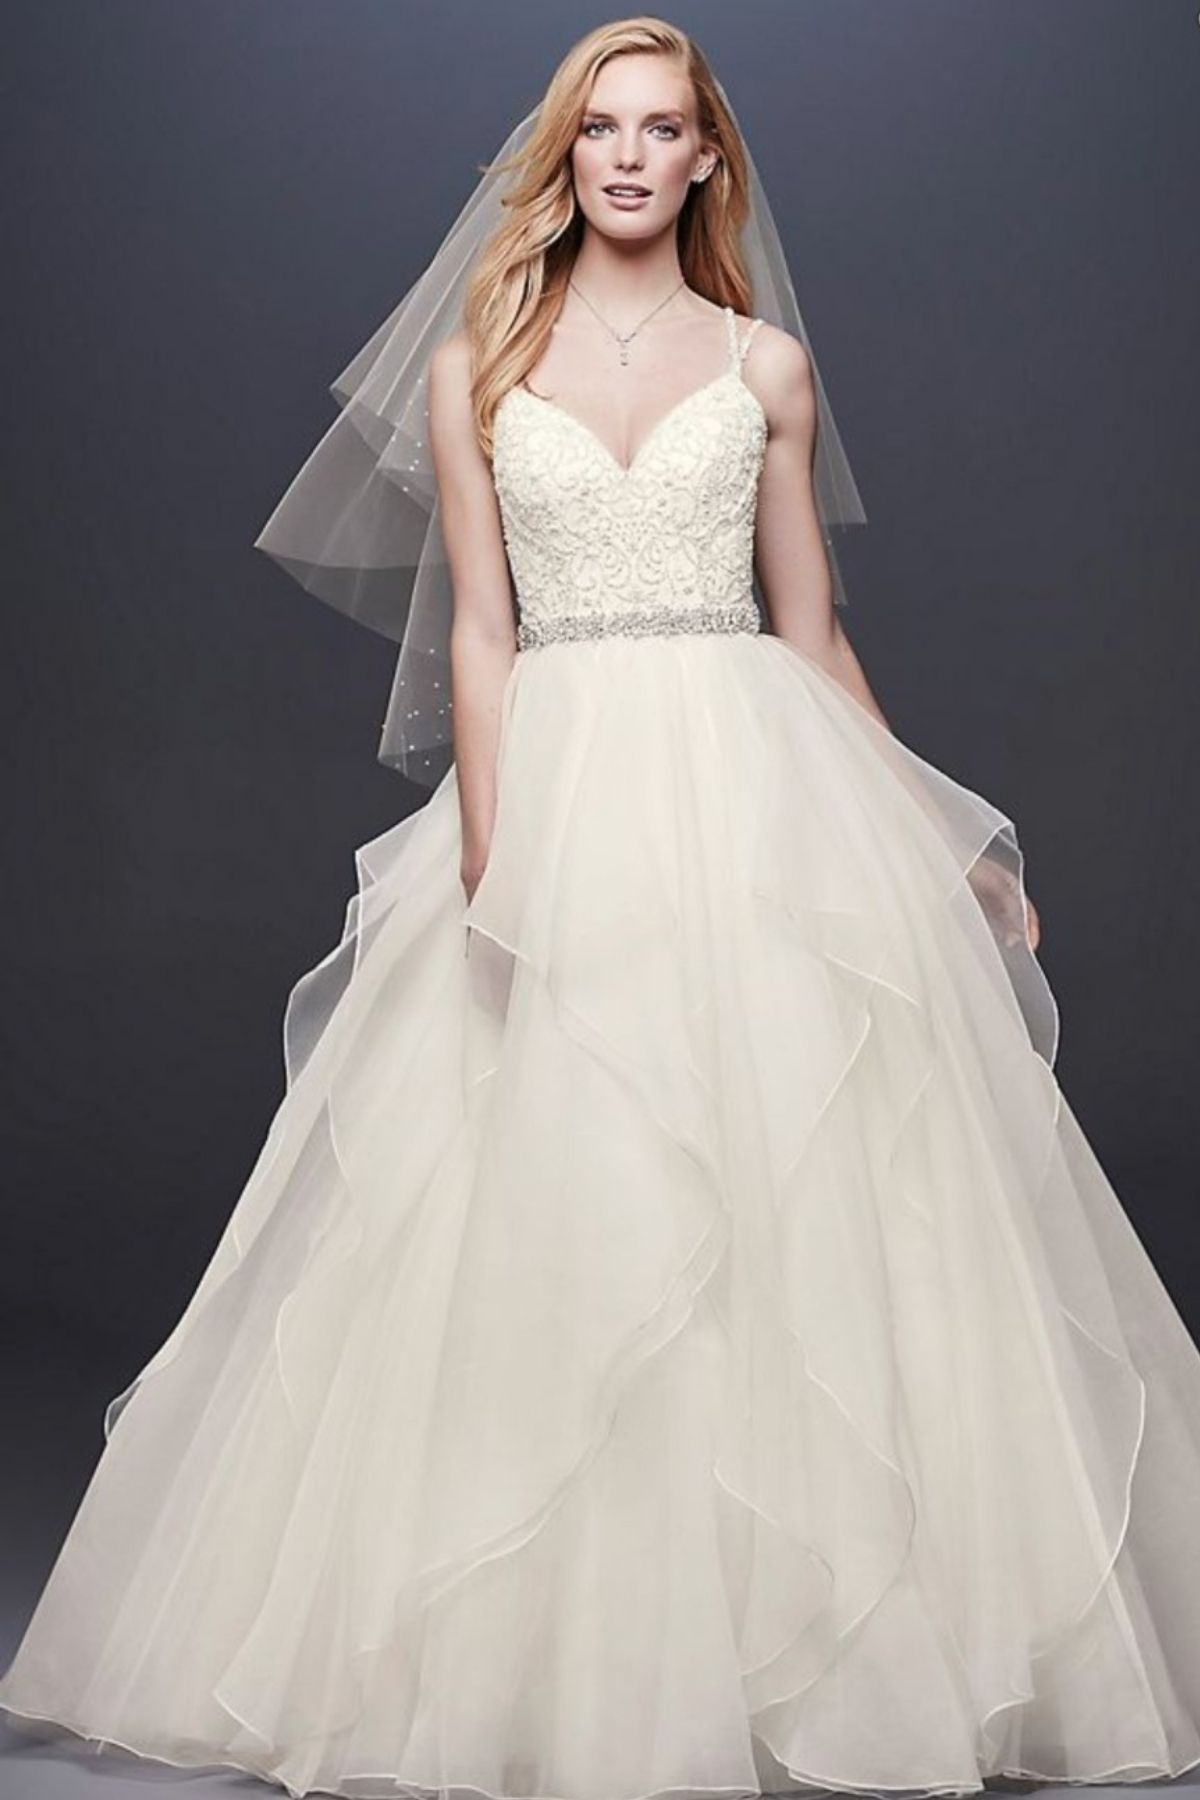 6. Garza Ball Gown Wedding Dress with Double Straps - Ballgown style bridal dresses under $800: Top 10 from David's Bridal